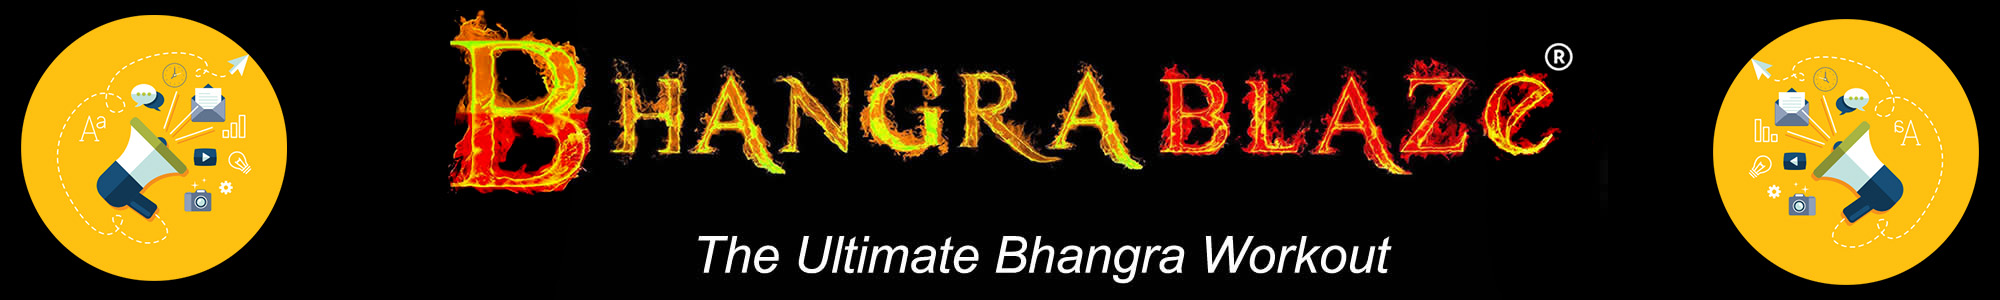 BhangraBlaze Press Releases